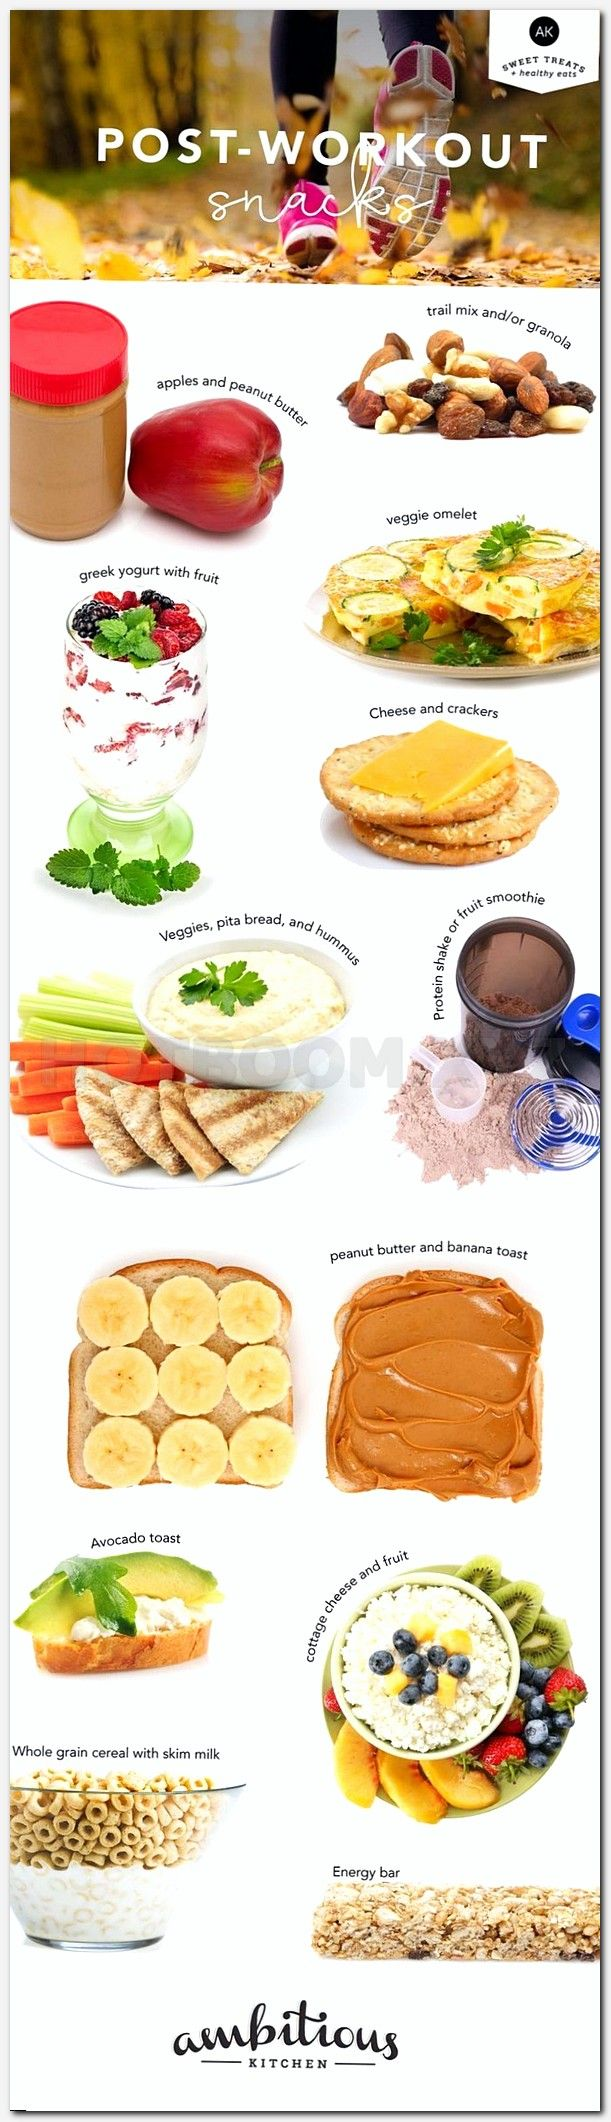 eating fruits only to lose weight, tips to lose weight fast, increase fat loss, weight loss snacks for men, perhiz listesi, what not to eat to reduce belly fat, low carb crash diet, la weight loss purple plan menu, best tips to lose weight, examples of high fiber foods, what is the perfect diet, obezite ne demek, yoga exercises, medi diet, recipe diet cabbage soup, drinking apple cider vinegar weight loss